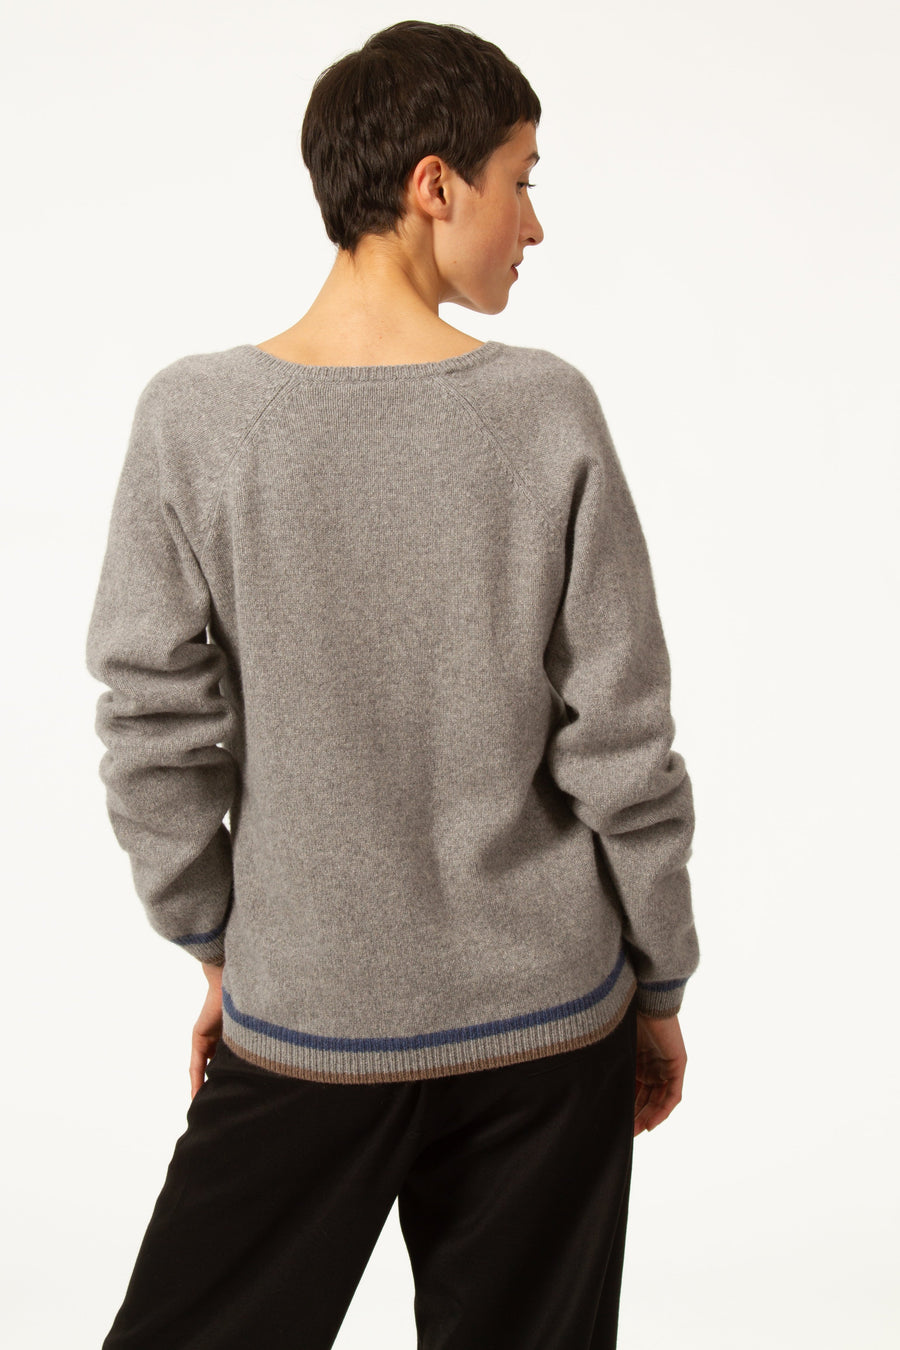 HENRY Grey Sweater